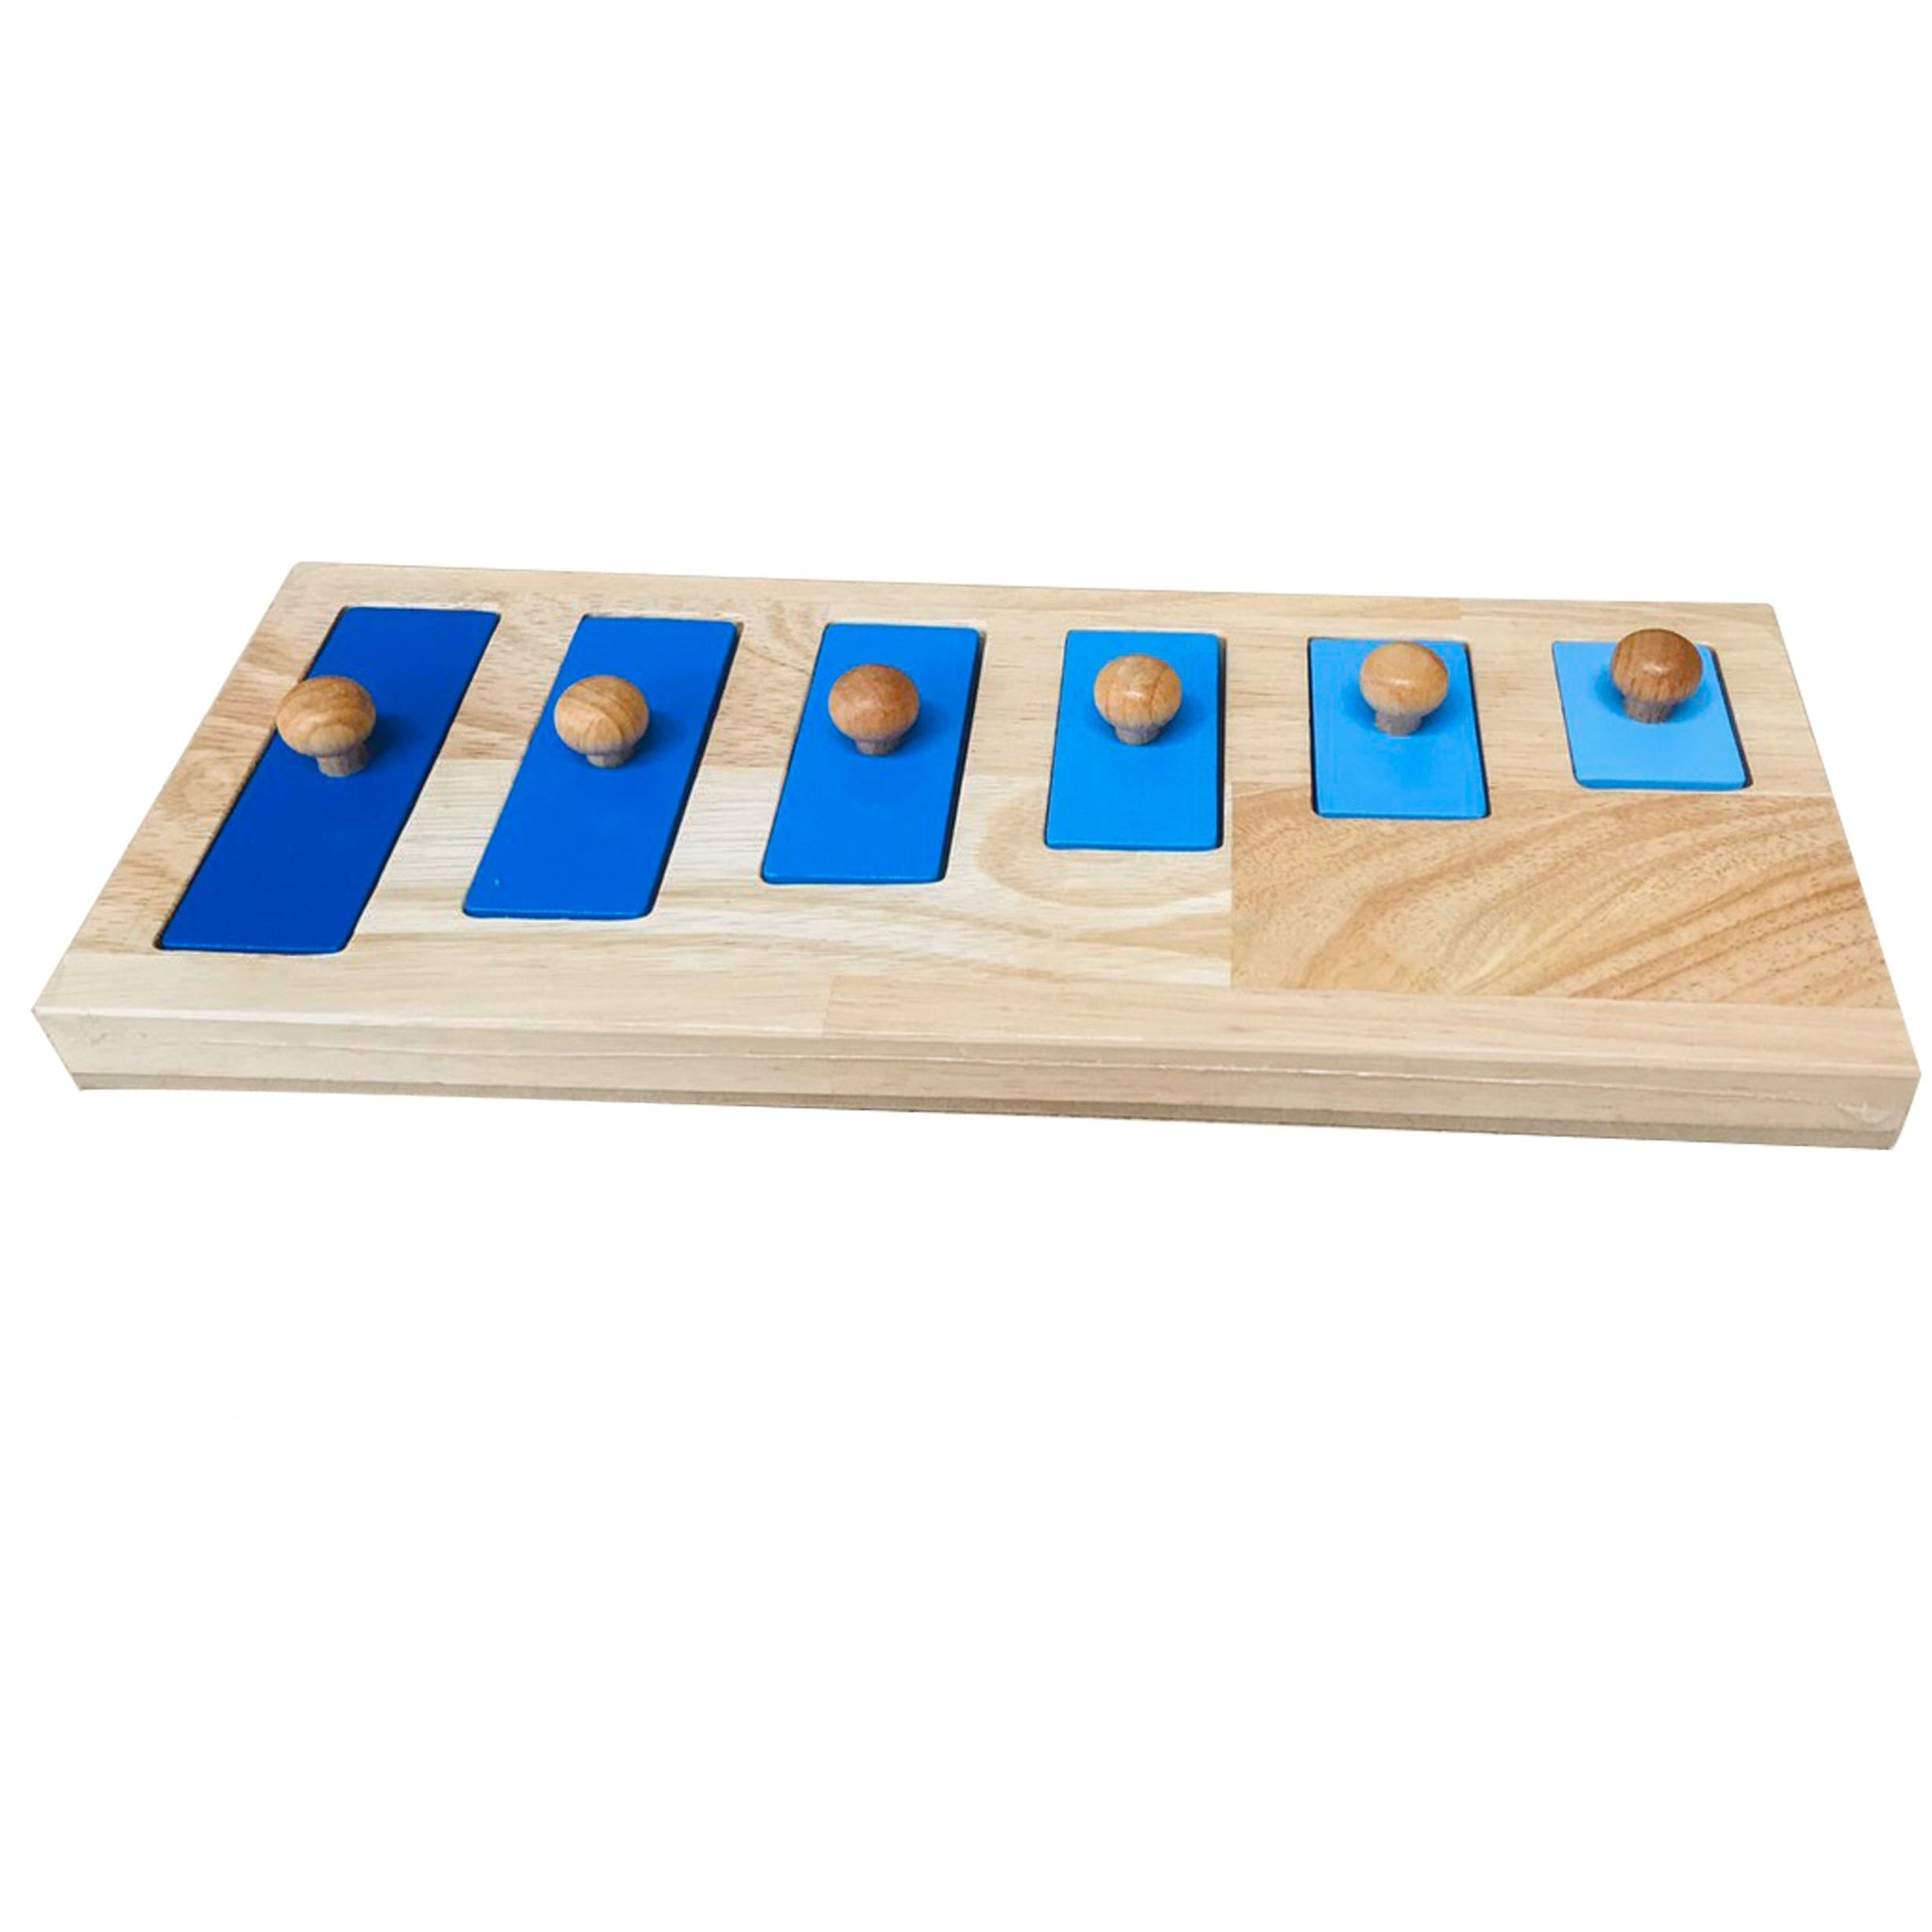 QToys Short-Tall Knob Puzzle Wooden Toy-MercadoGames.com